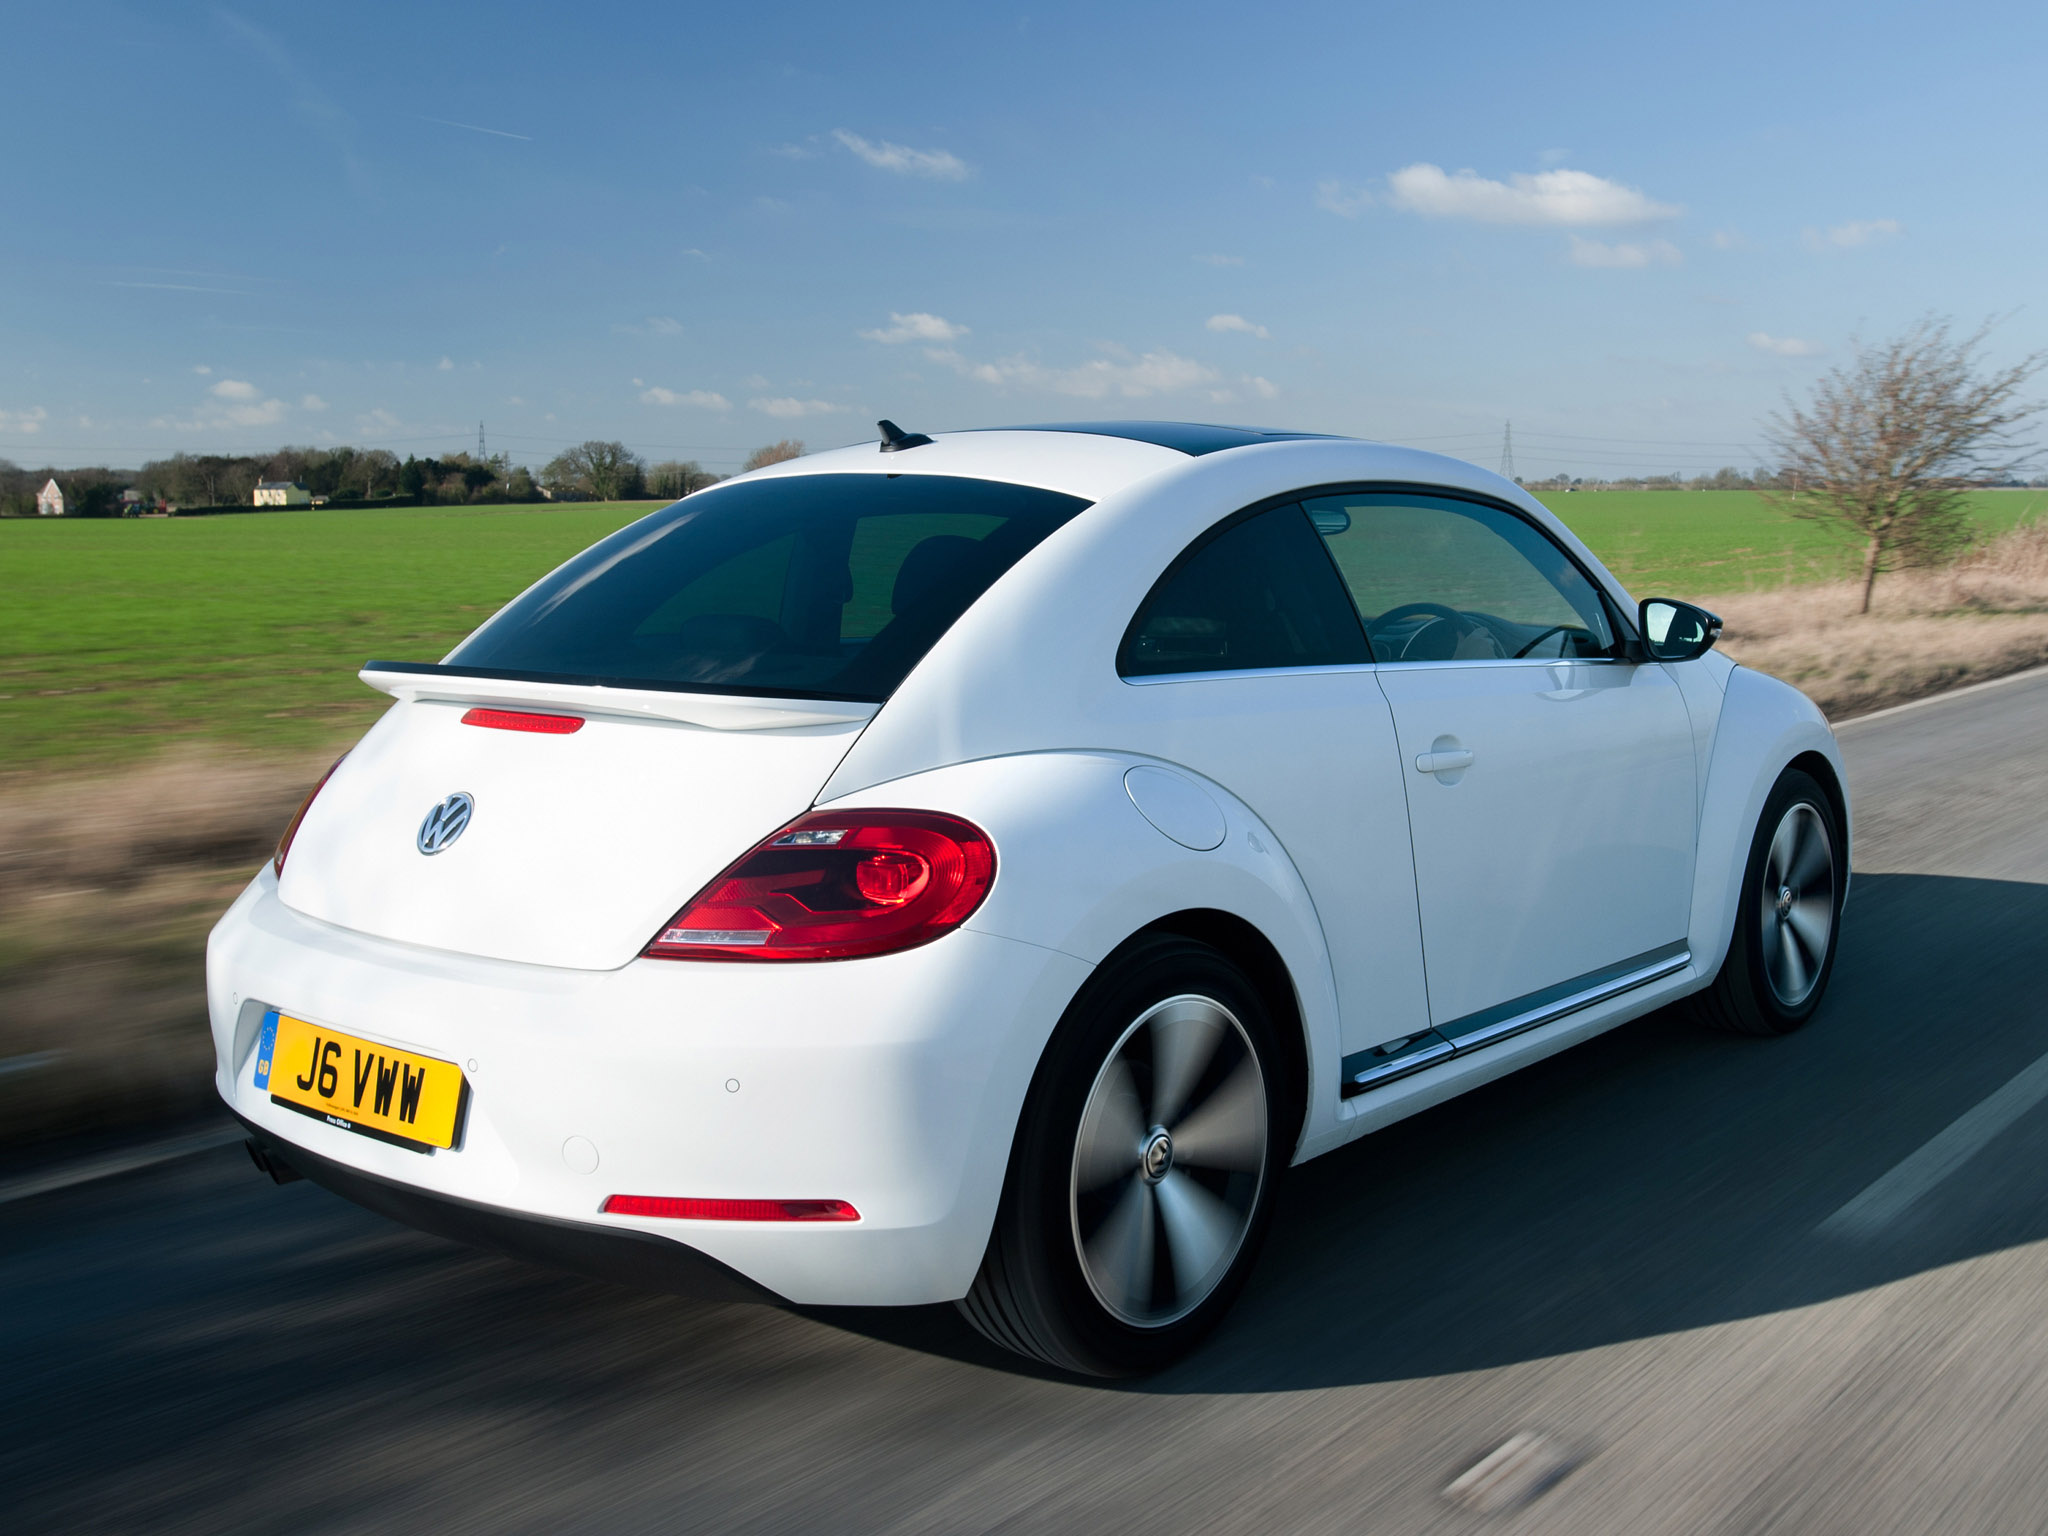 volkswagen beetle uk 2011 volkswagen beetle uk 2011 photo 07 car in pictures car photo gallery. Black Bedroom Furniture Sets. Home Design Ideas